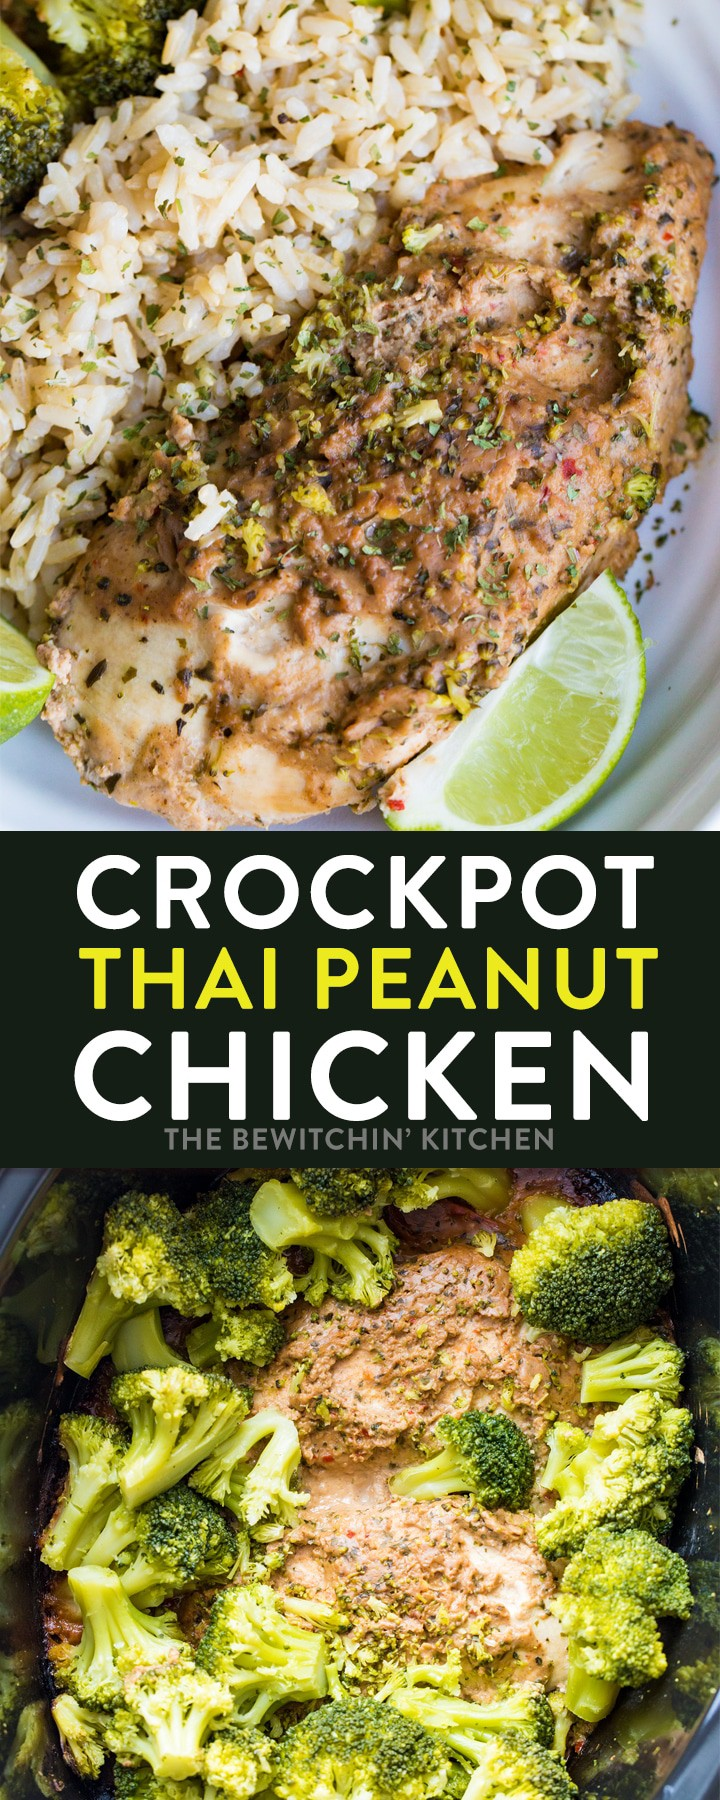 Slow Cooker Thai Chicken recipe- A creamy peanut butter sauce with lime, chili paste that is super yummy and super easy! A weeknight dinner that's tossed in a Crockpot. Thai Peanut Chicken is a simple meal to add to your menu plan. #thebewitchinkitchen #crockpotthaichicken #thaichicken #slowcookerthaichicken #crockpotchicken #slowcookerchicken #thaipeanutsauce #thaipeanutchicken